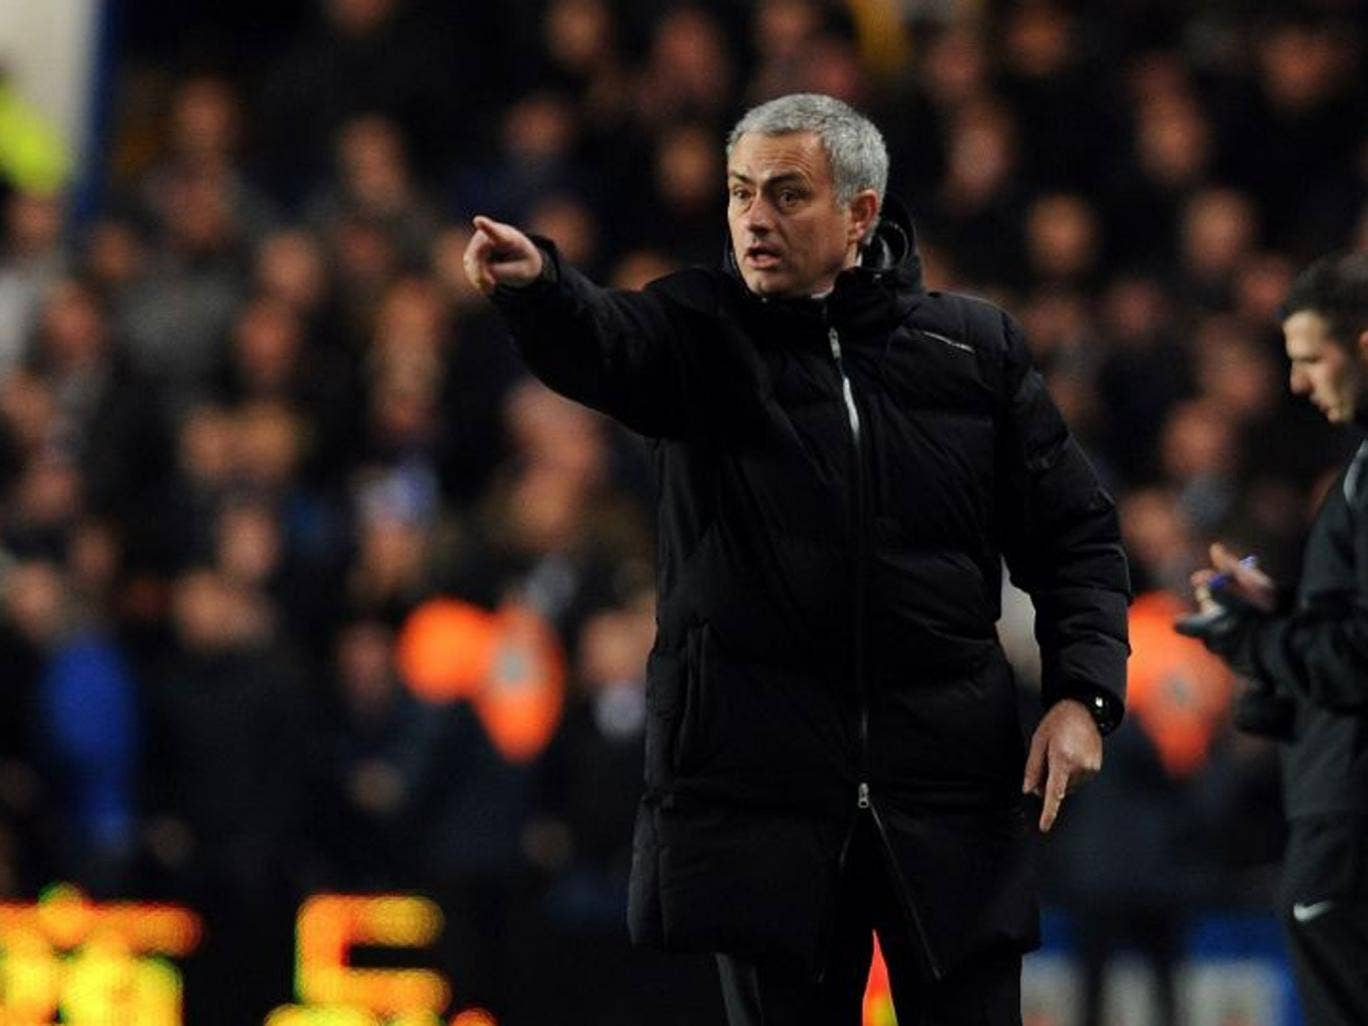 Mourinho has questioned the number of foreign managers in the UK, admitting he was part of the problem